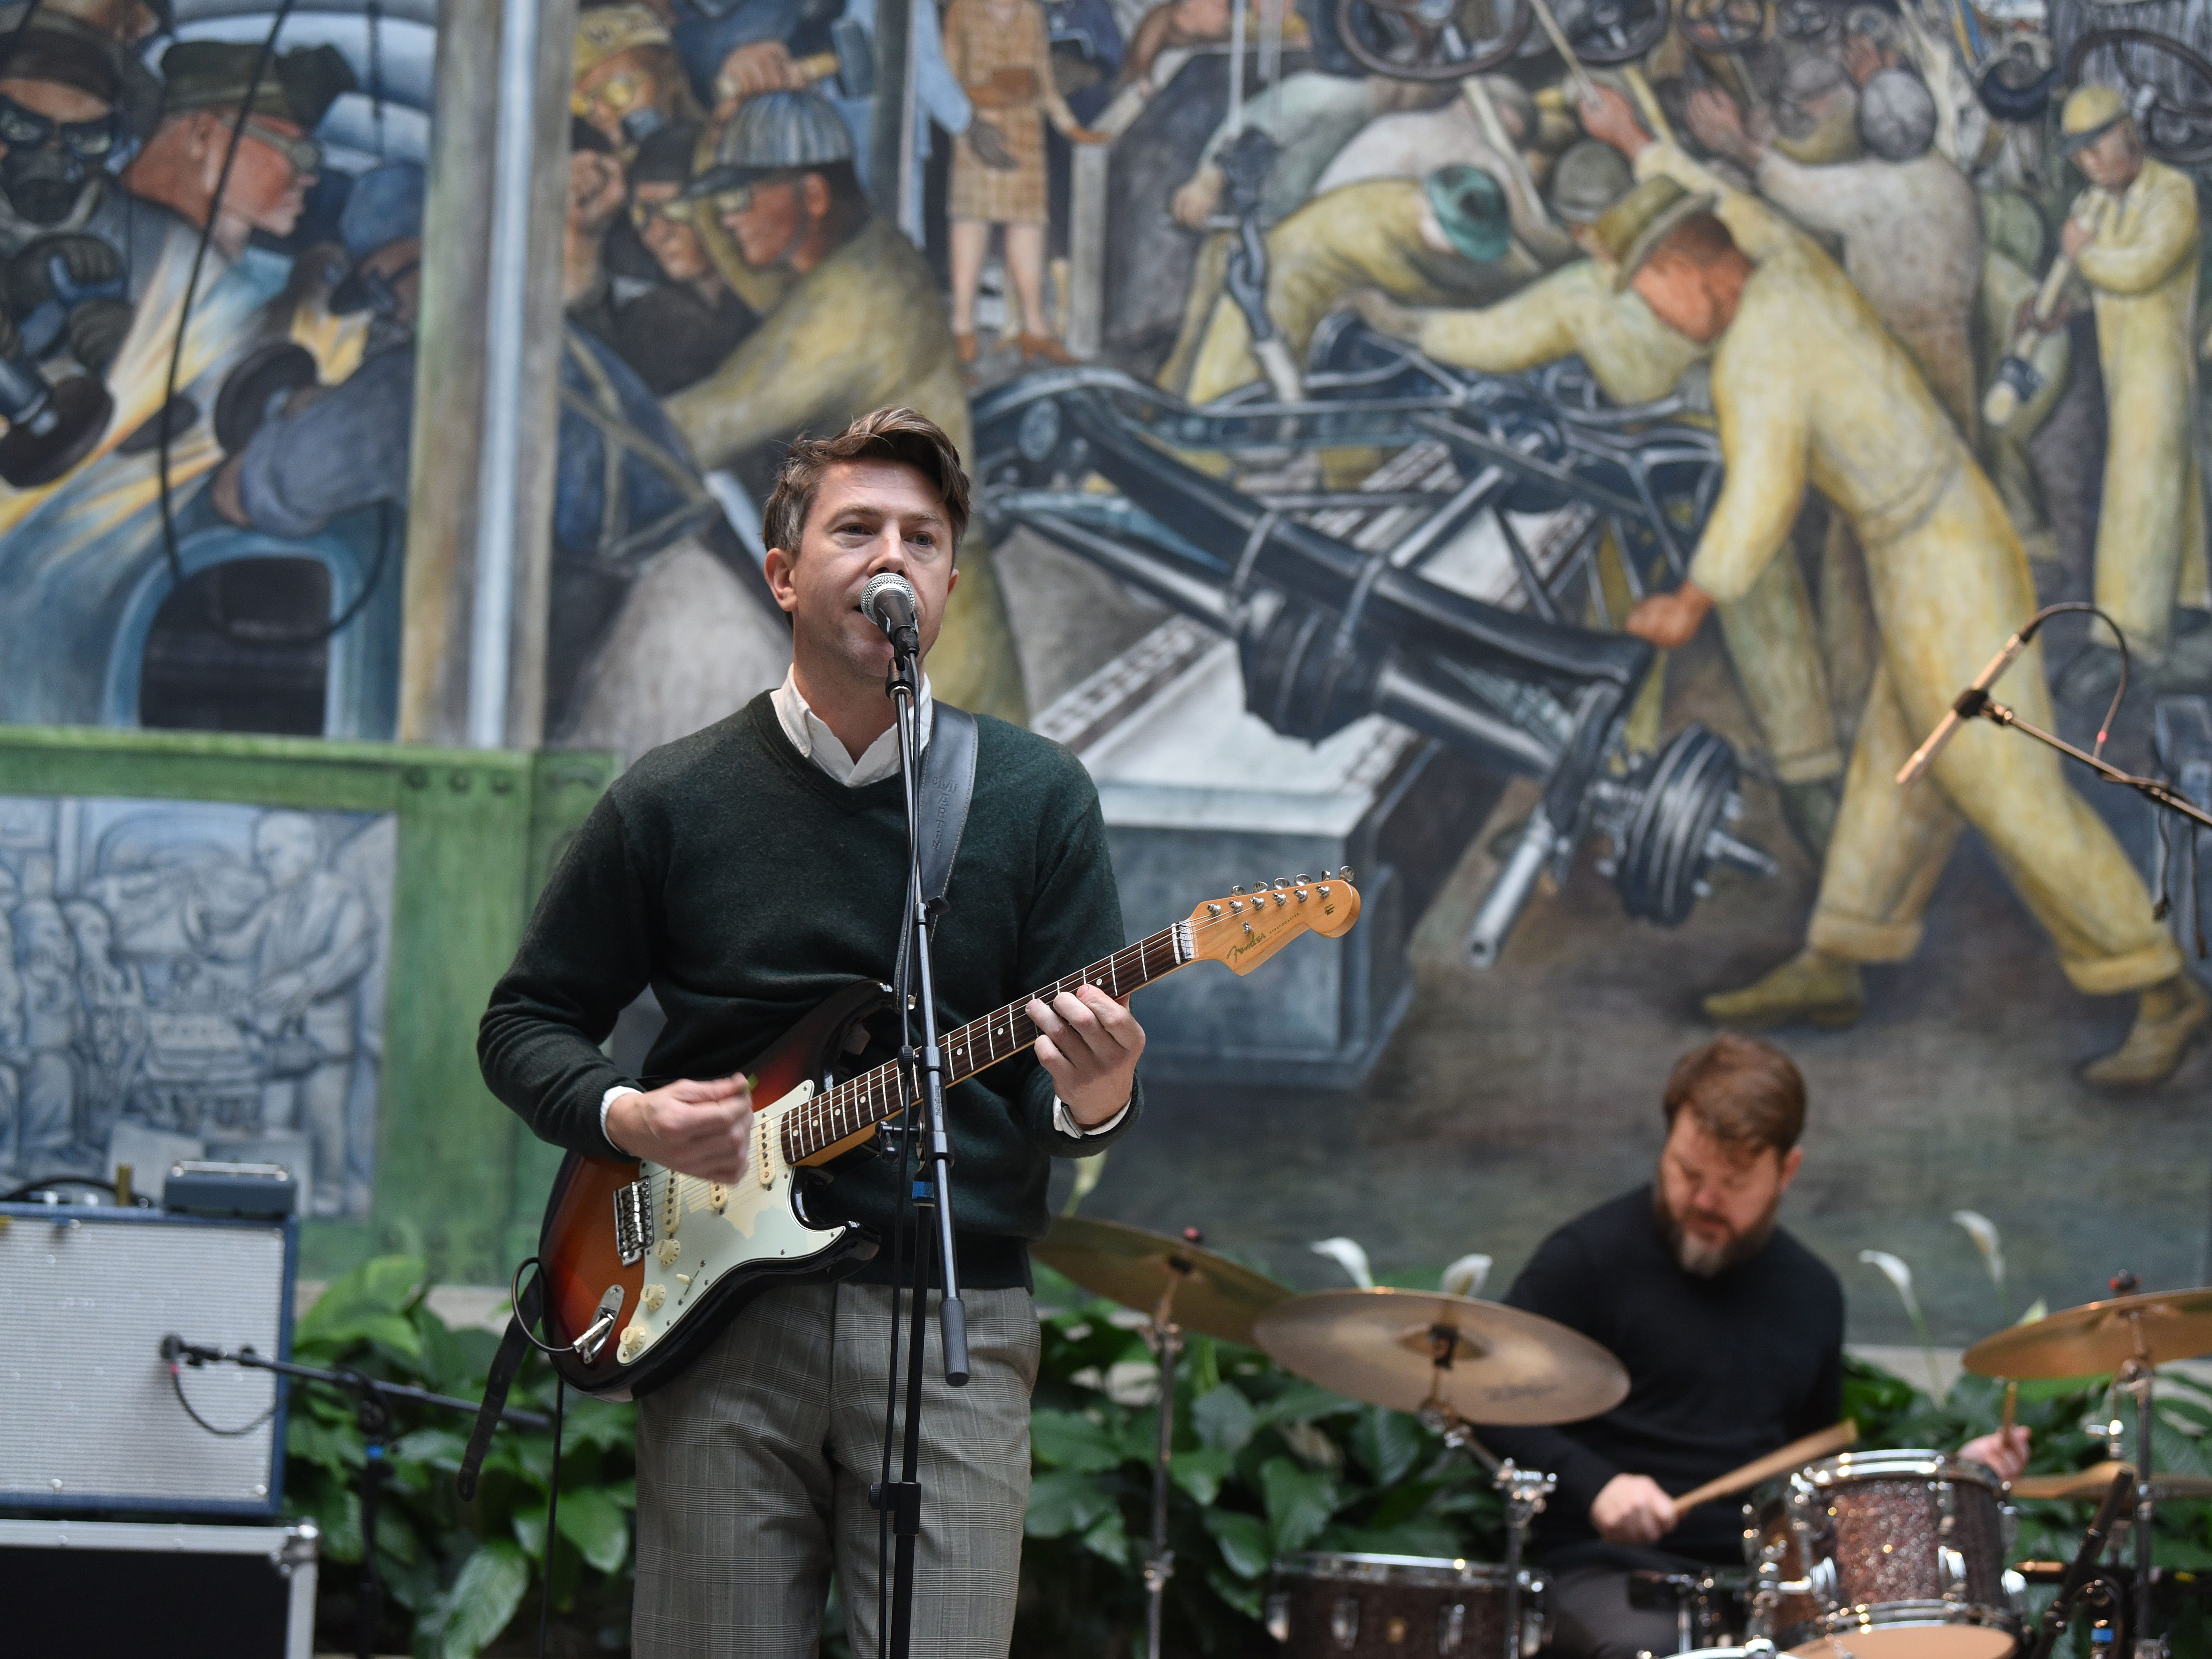 Luke Winslow-King performs at the Detroit Institute of Art's Rivera Court during Noel Night events